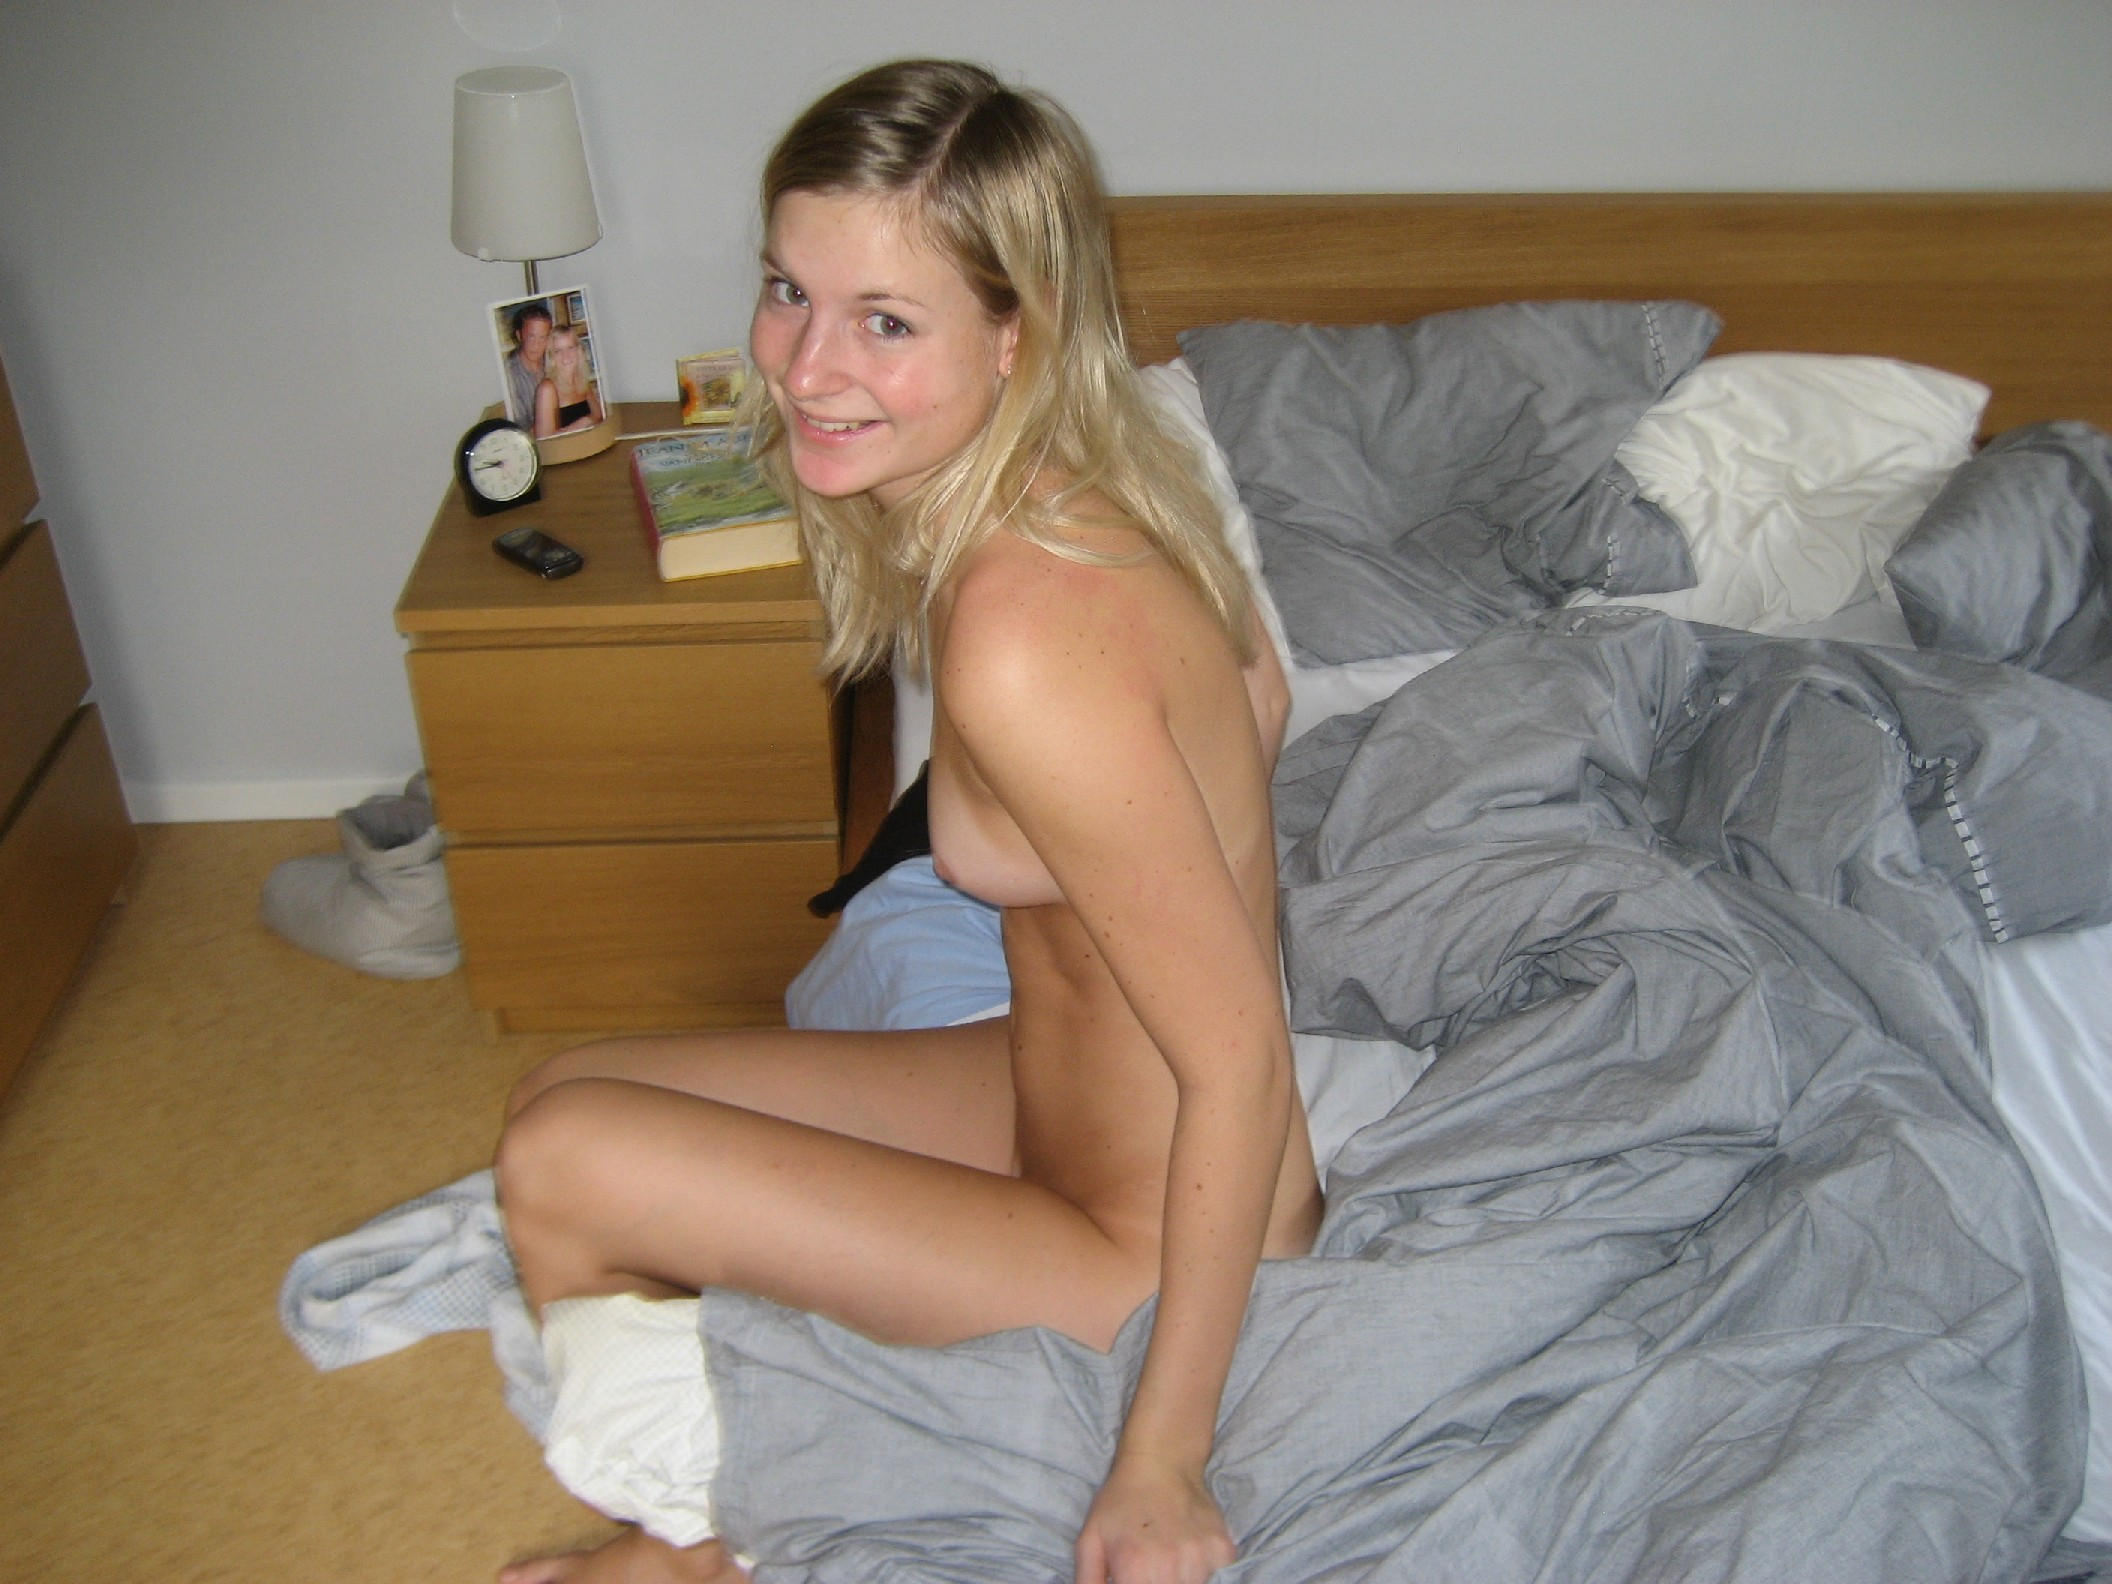 Nude swedish pics hot